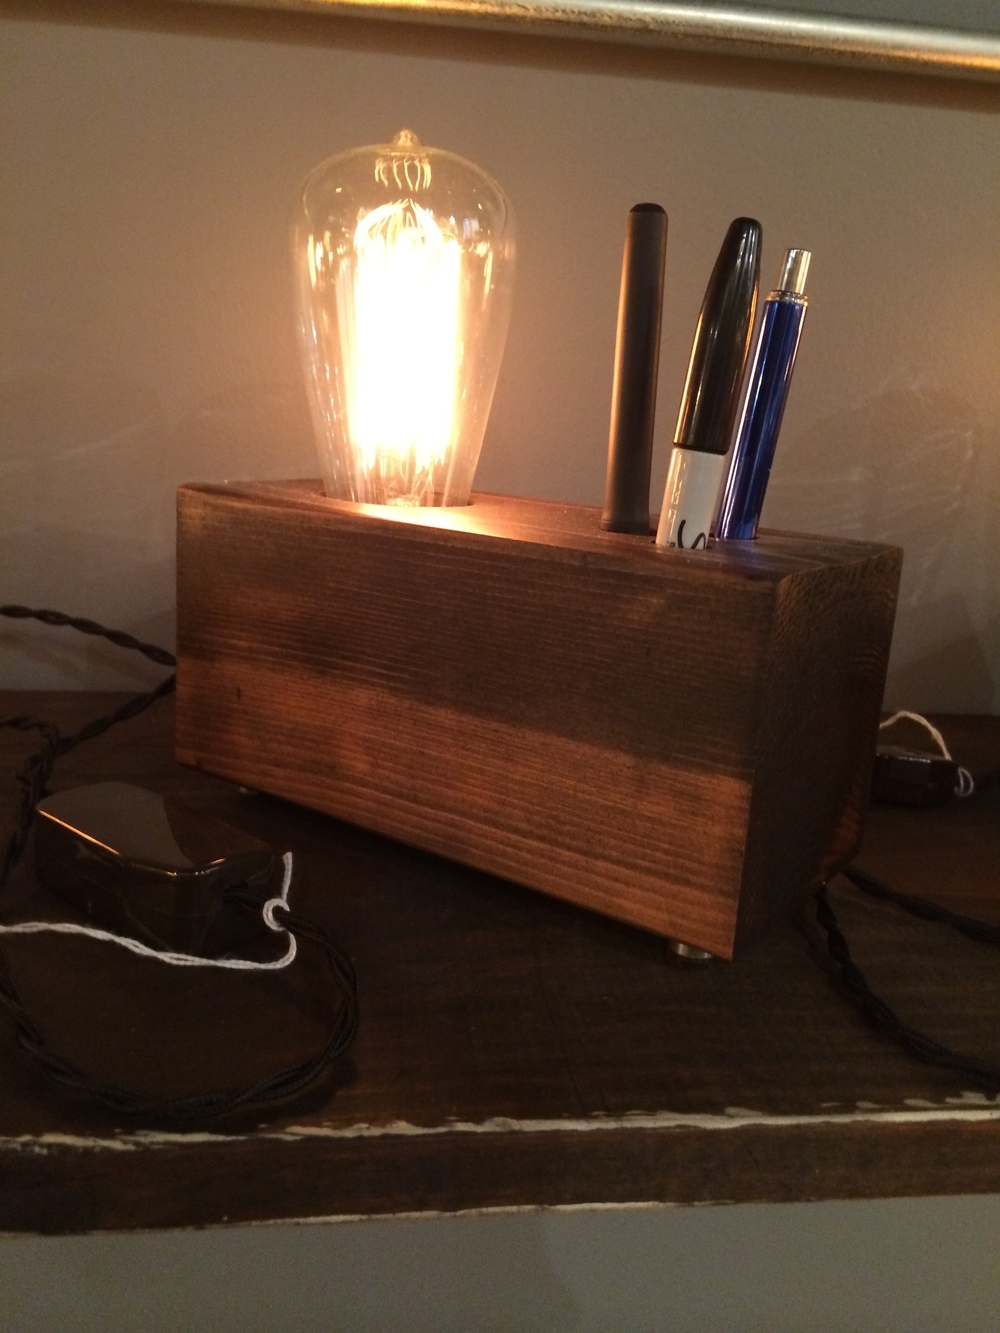 Block O'wood Lamp & Pen Holder - $65 (SOLD)